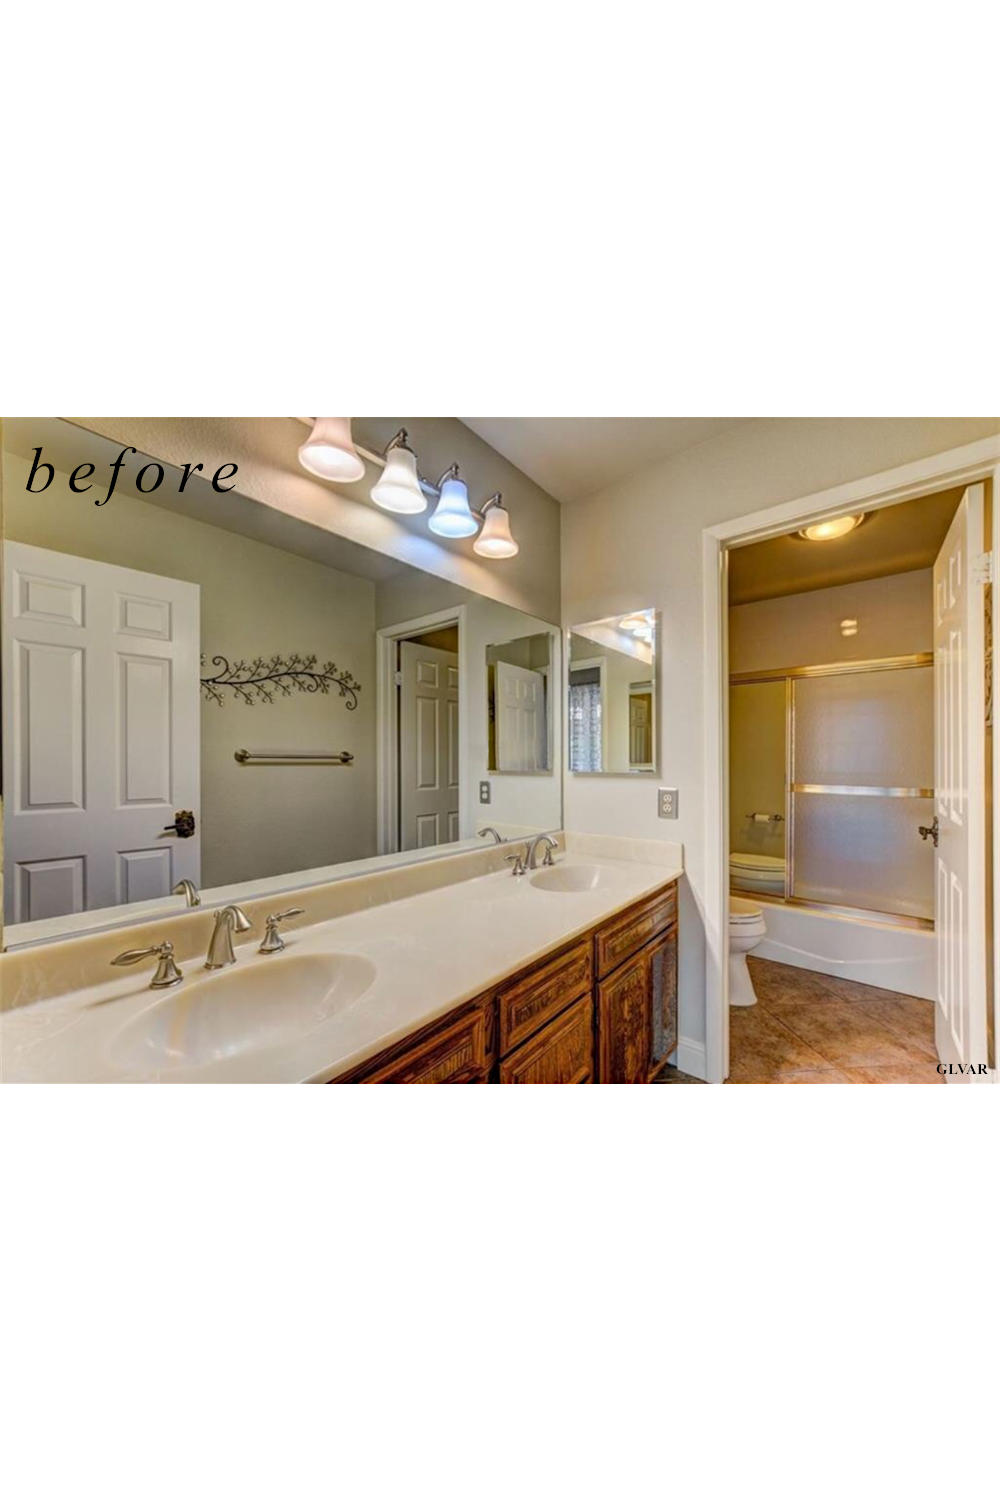 Before remodel image: date and old bath with shower.